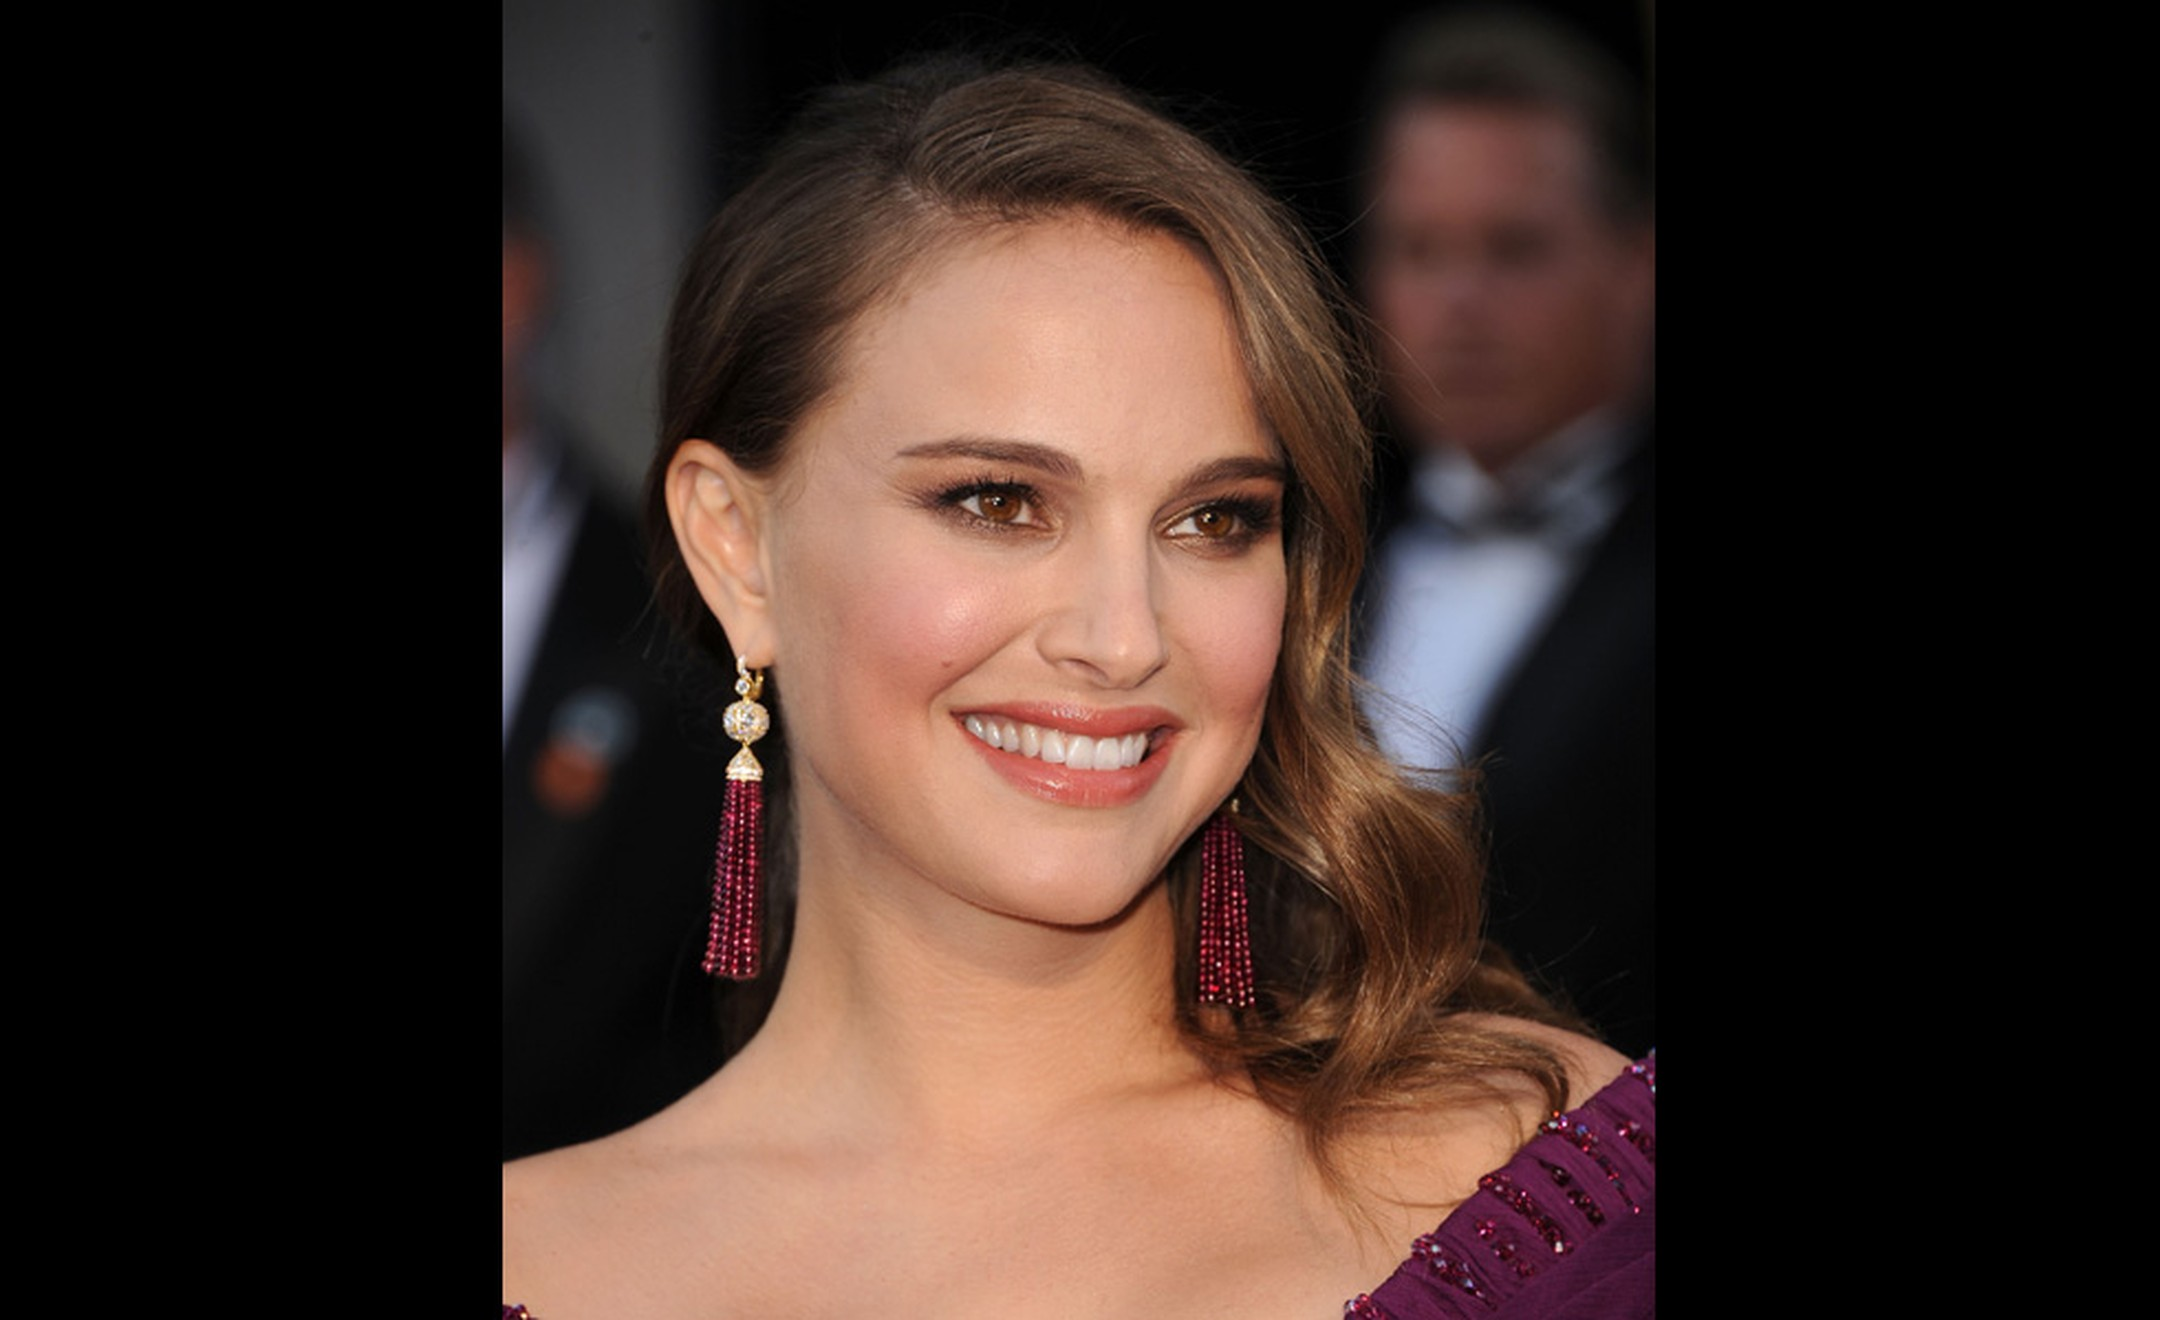 Natalie-Portman-wears-Tiffany-earrings-at-OSCARS